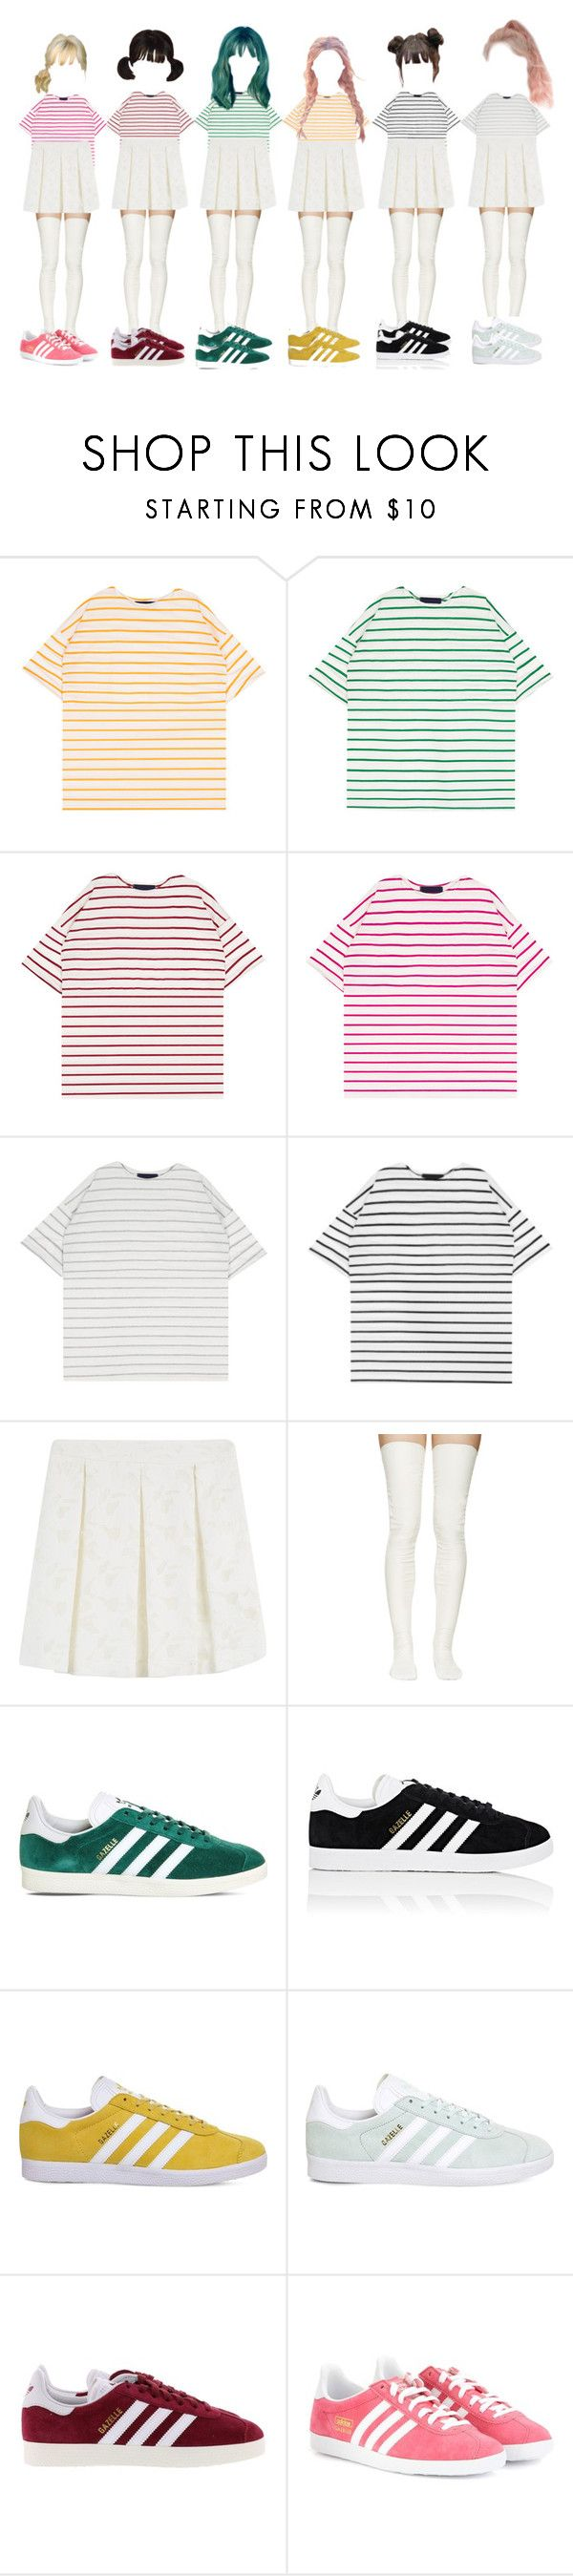 """""""DC-Honey"""" by yonce4park ❤ liked on Polyvore featuring Paul & Joe, Sacai Luck and adidas"""